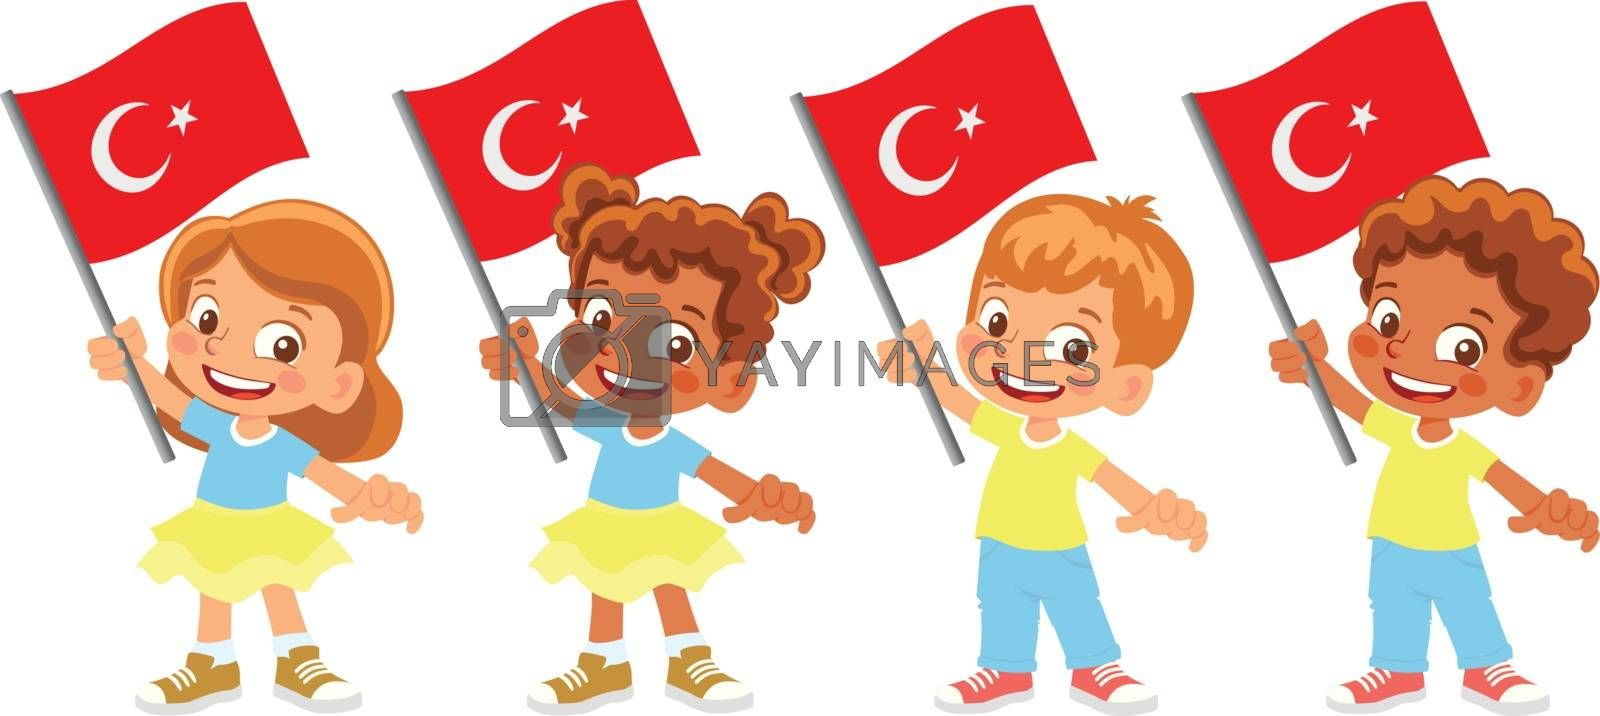 Turkey flag in hand set by Visual-Content